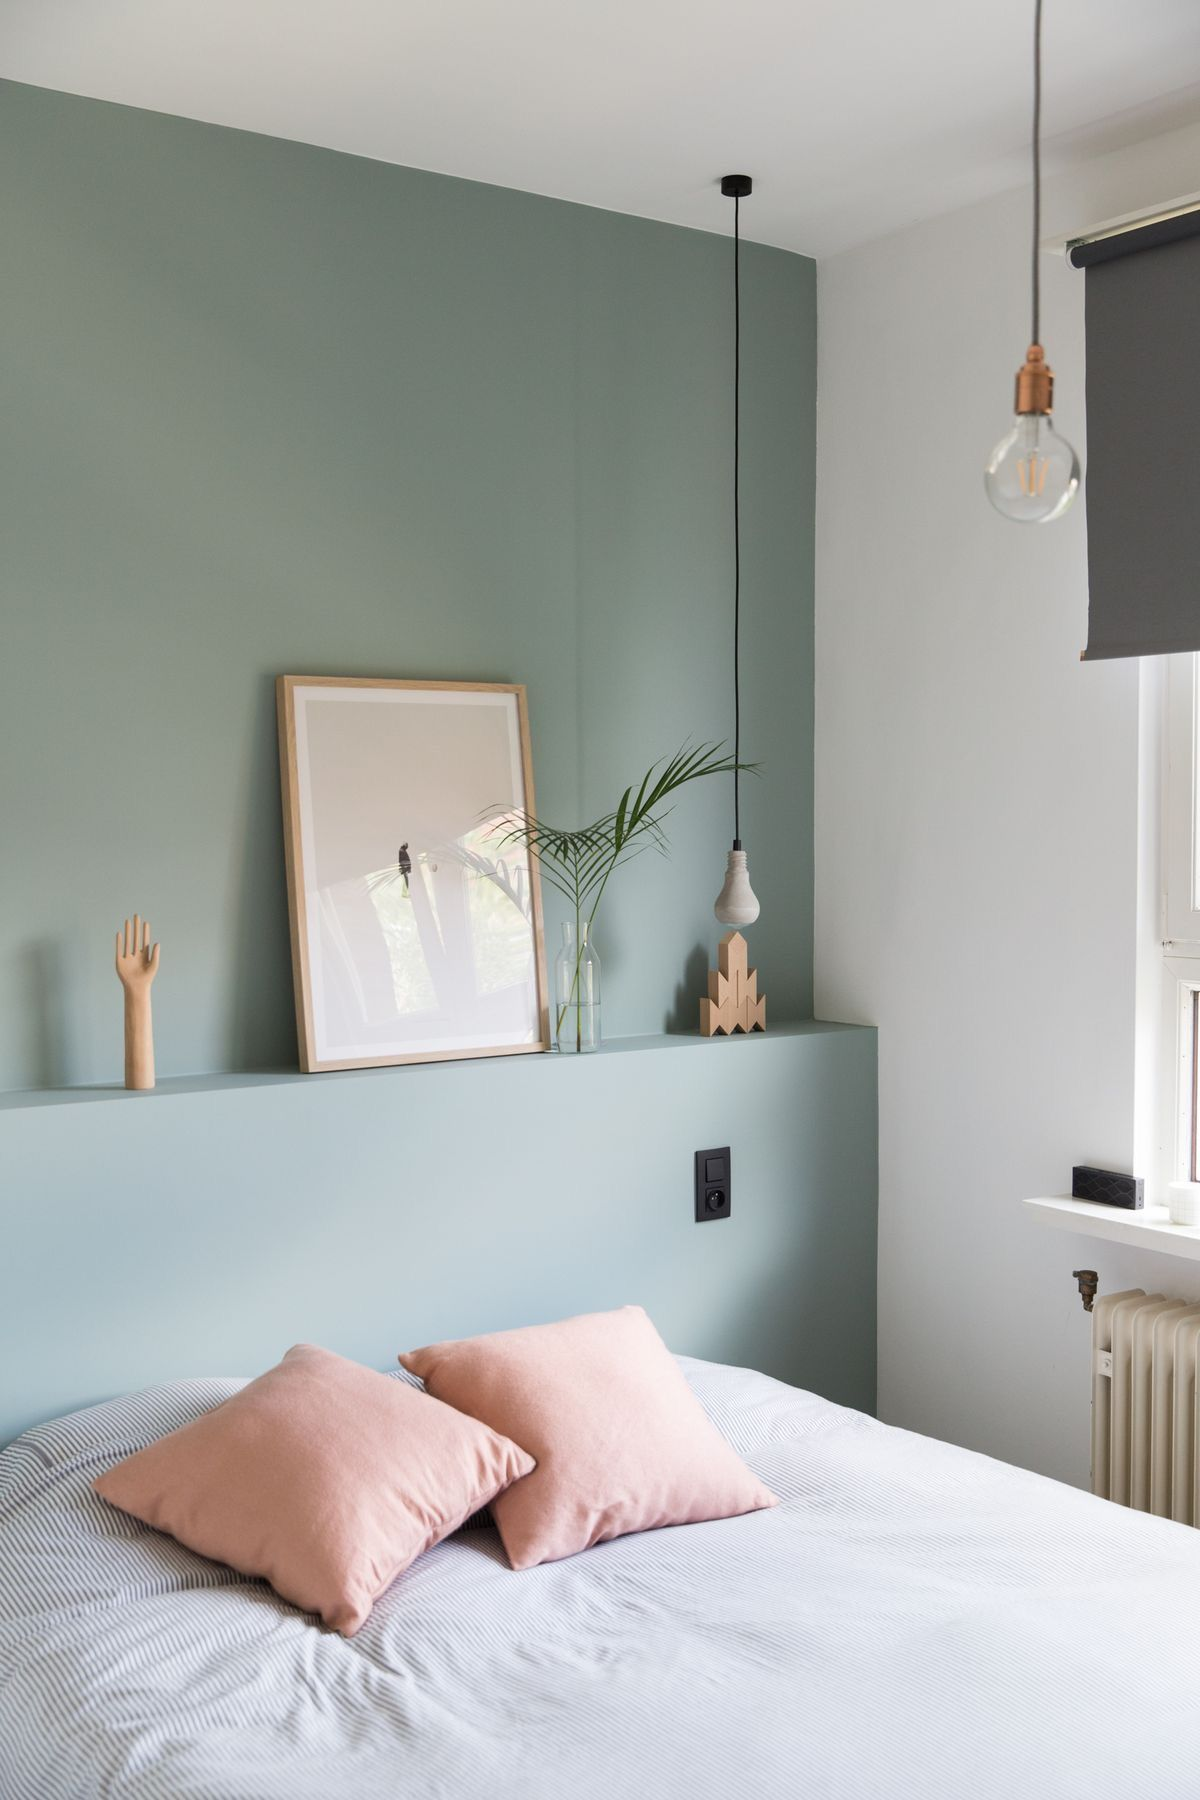 on choisit du vert pastel pour une chambre cocooning. Black Bedroom Furniture Sets. Home Design Ideas